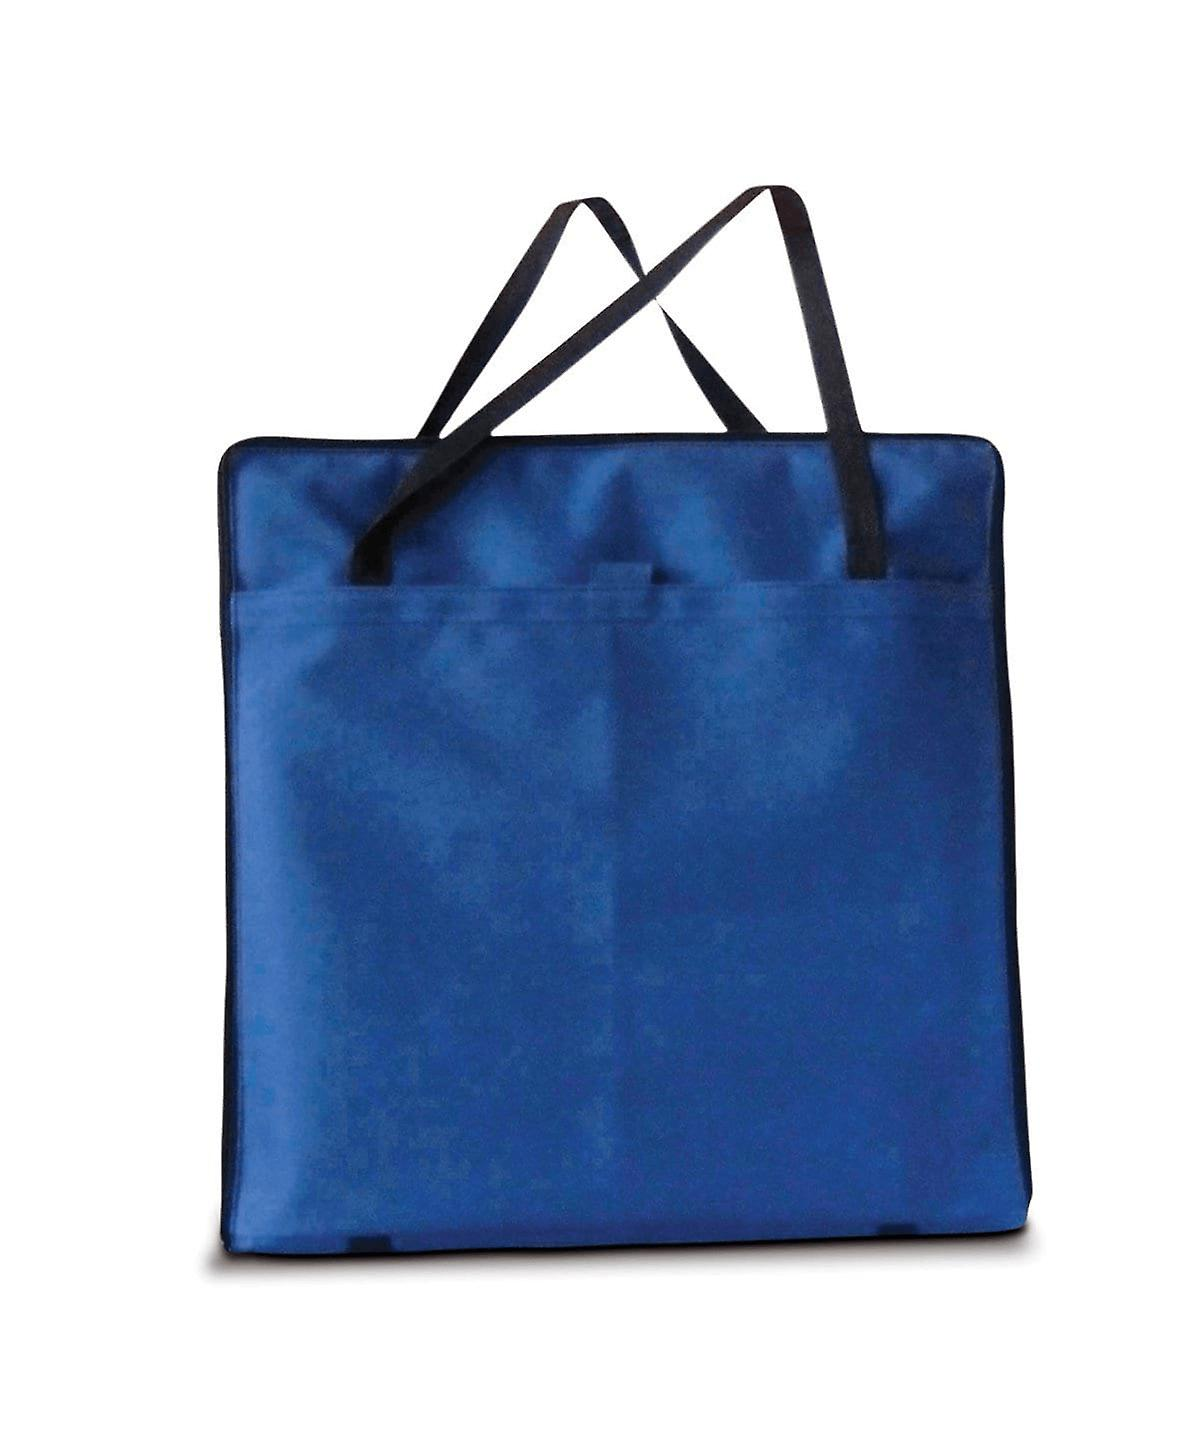 "OLPRO TV Storage Bag Blue Padded for 15"" and 16"" Flat Screen TVs Soft Interior"